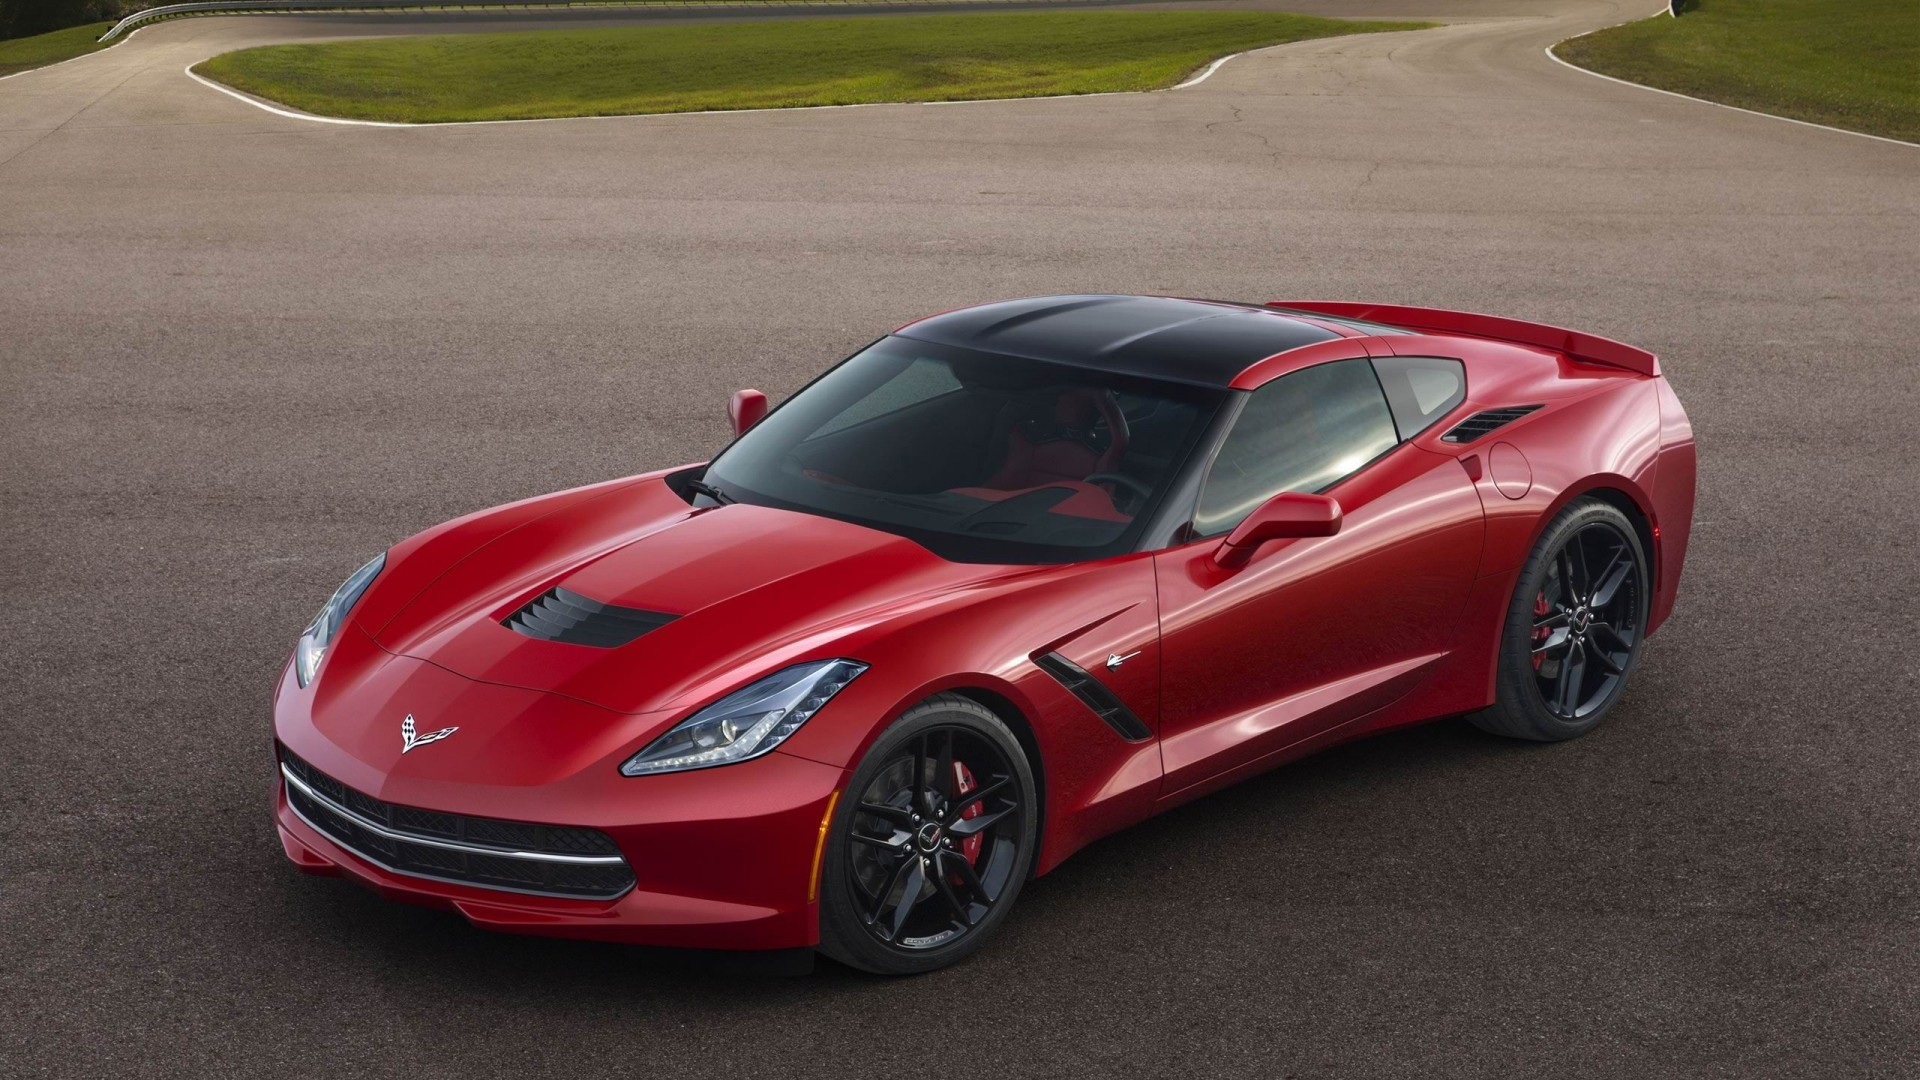 2014 Chevrolet Corvette Stingray Red HD desktop wallpaper